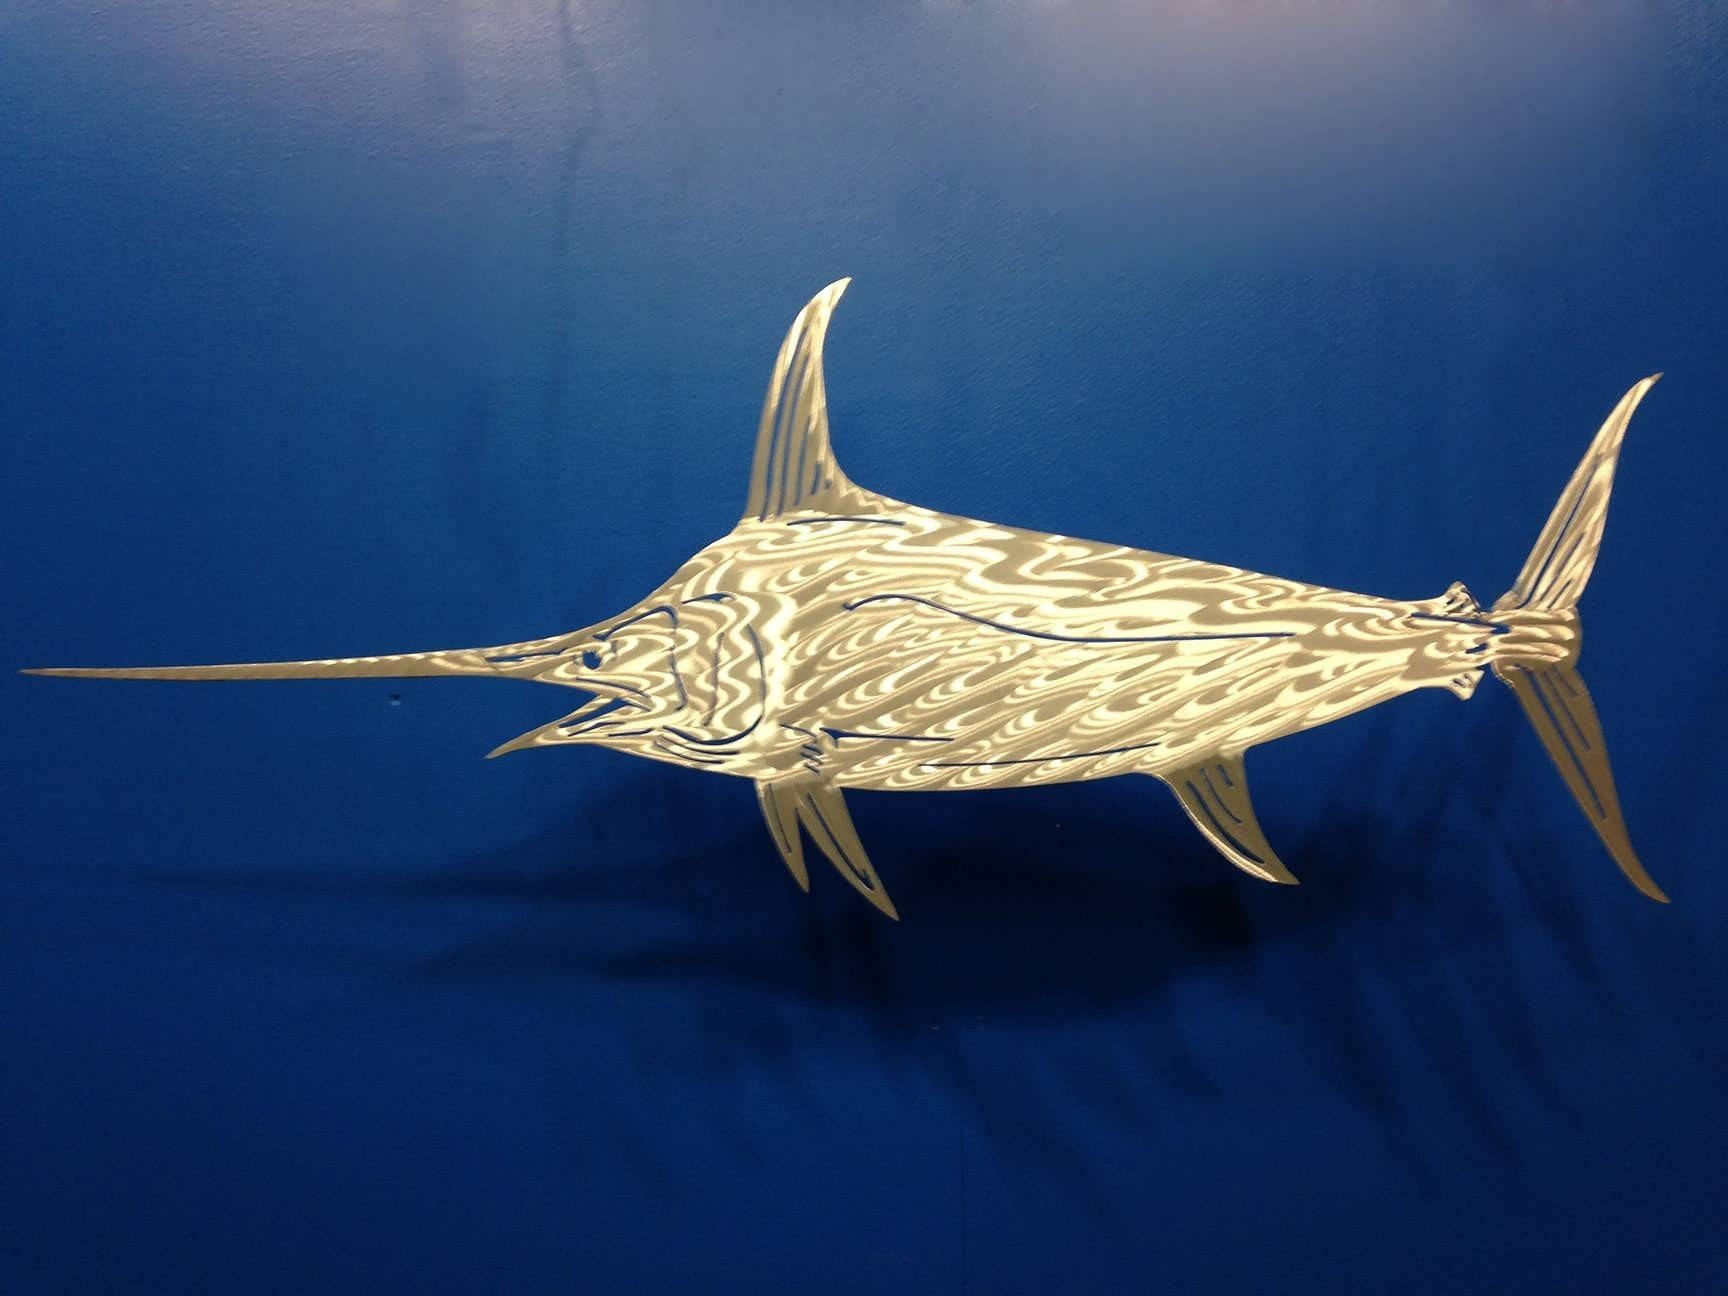 Fish Sculptures & Designs | Themetaledge Inside Most Popular Stainless Steel Fish Wall Art (View 8 of 17)